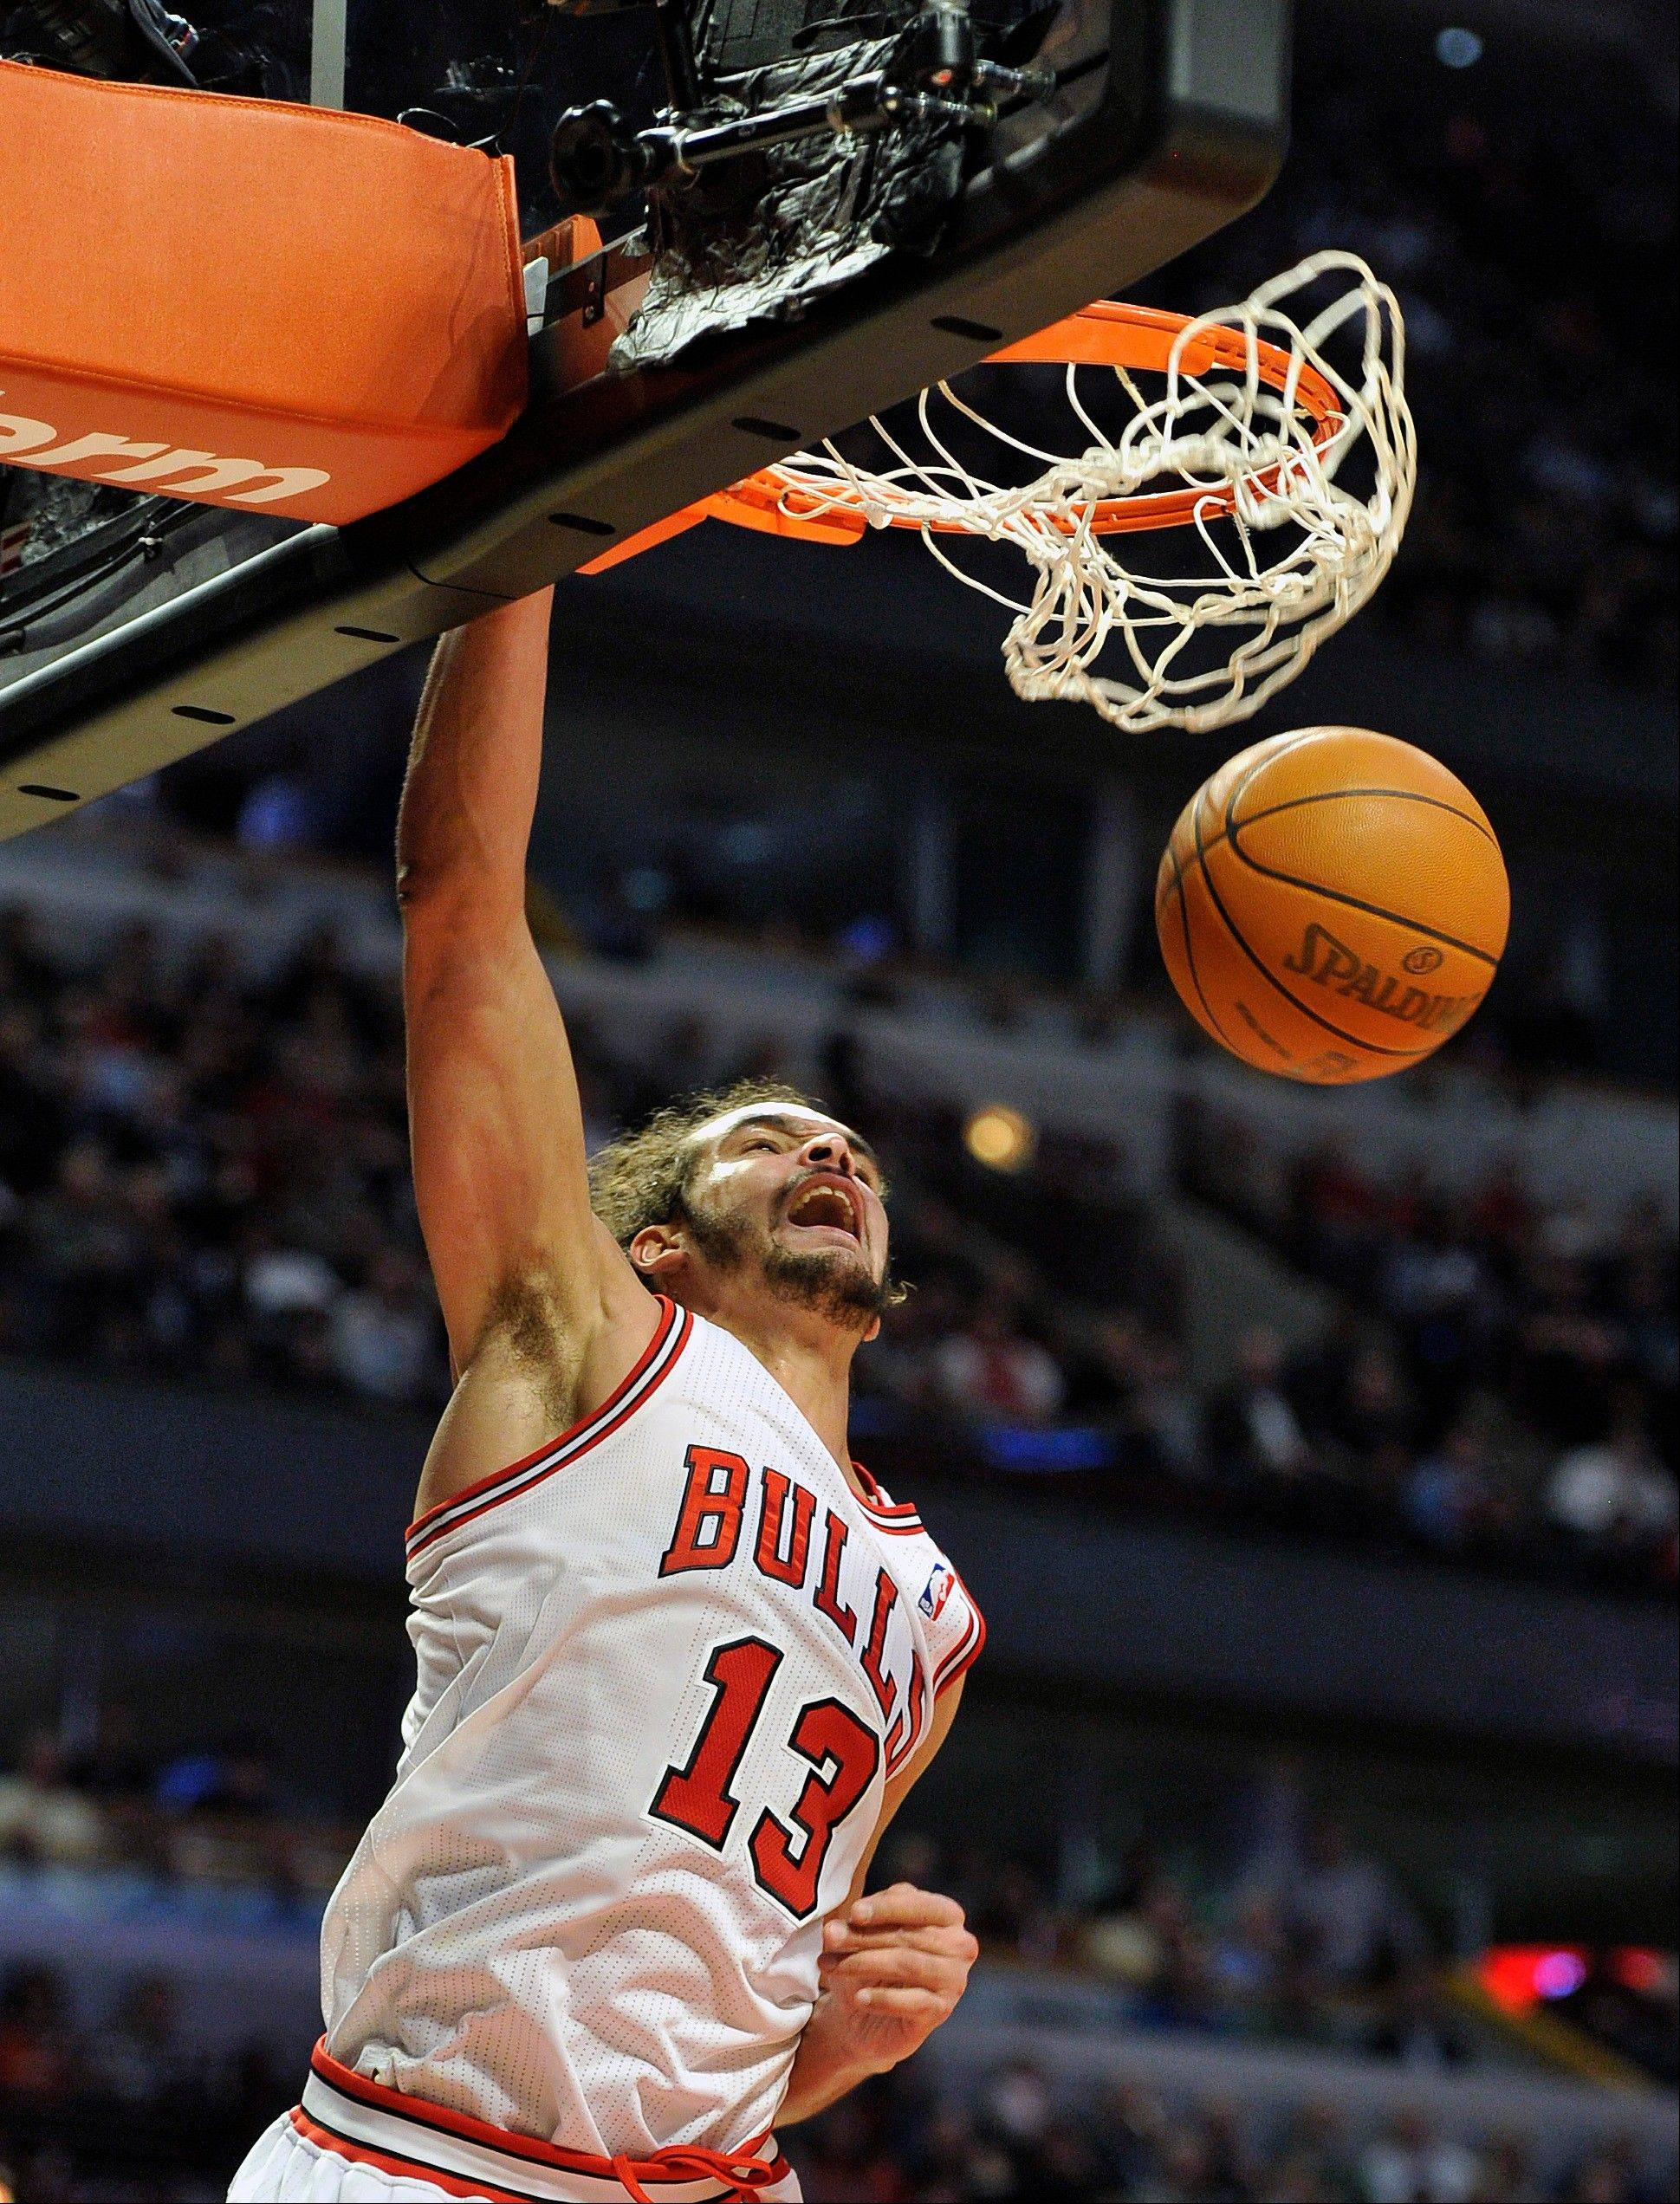 Joakim Noah dunks against the Bucks during the second half Wednesday night. The Bulls center got his first career triple-double in the victory.